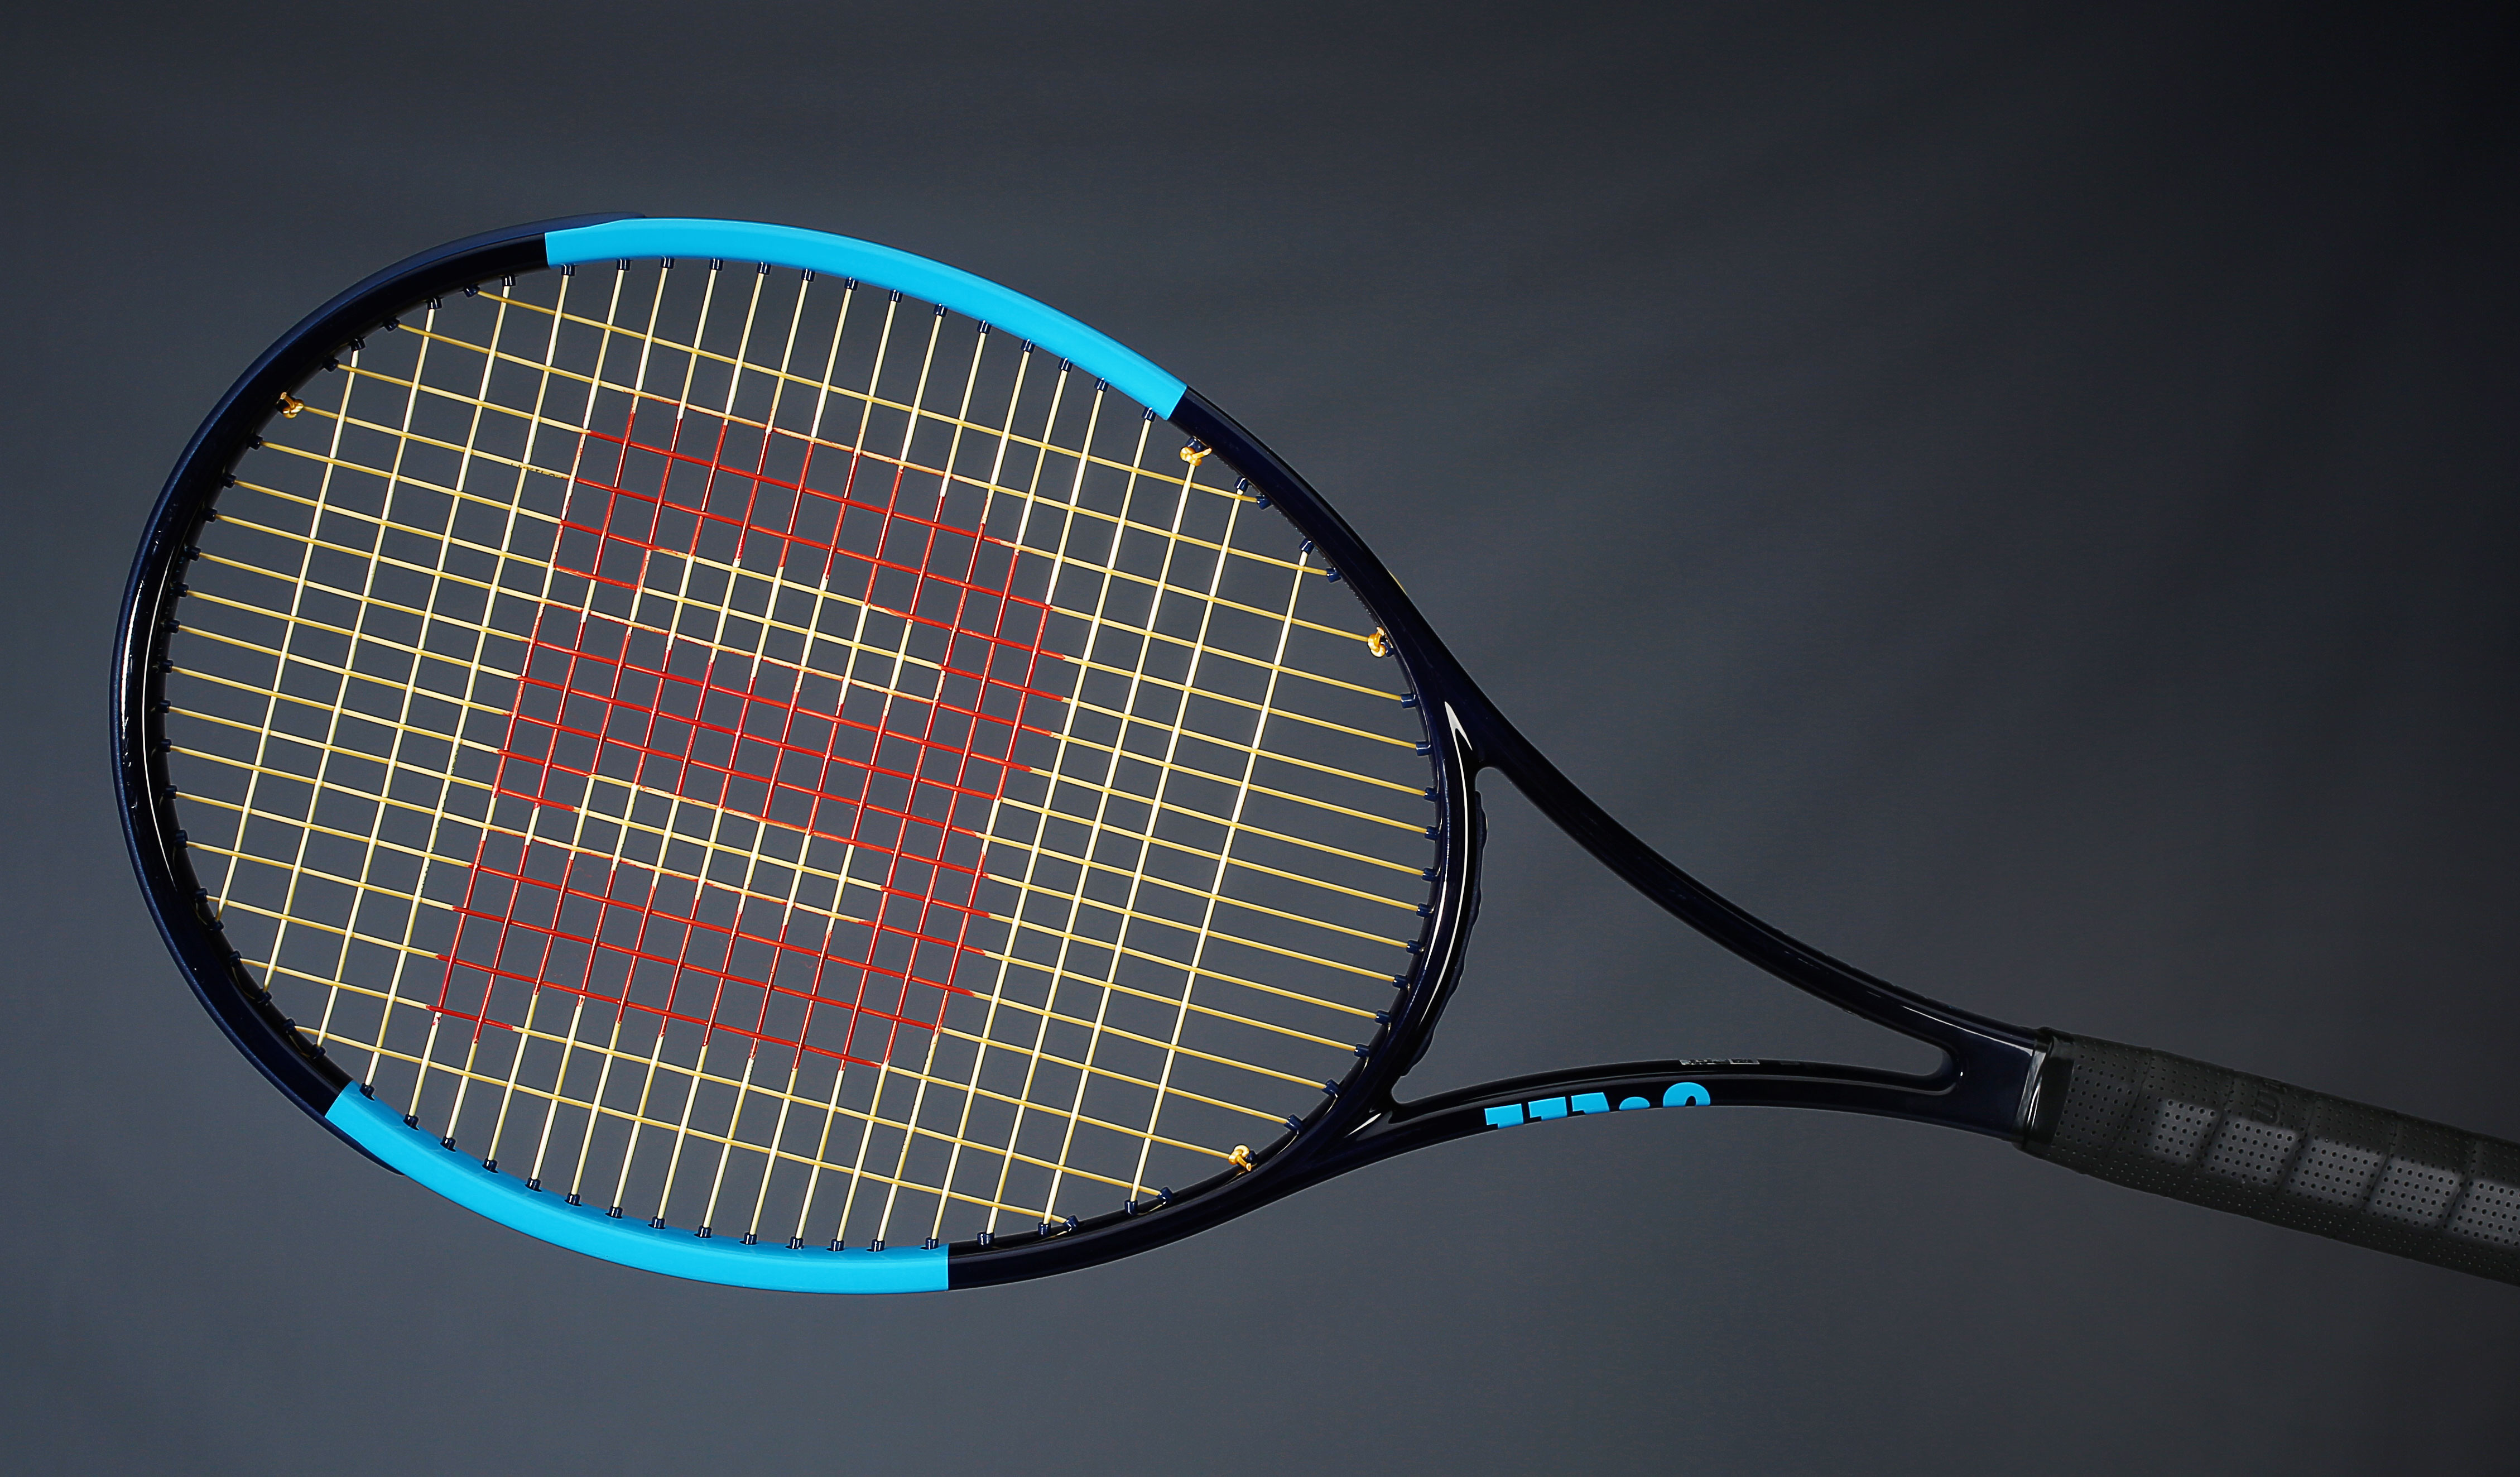 Babolat Tennis Shoes >> WILSON REDEFINES POWER WITH 2017 ULTRA PERFORMANCE TENNIS ...